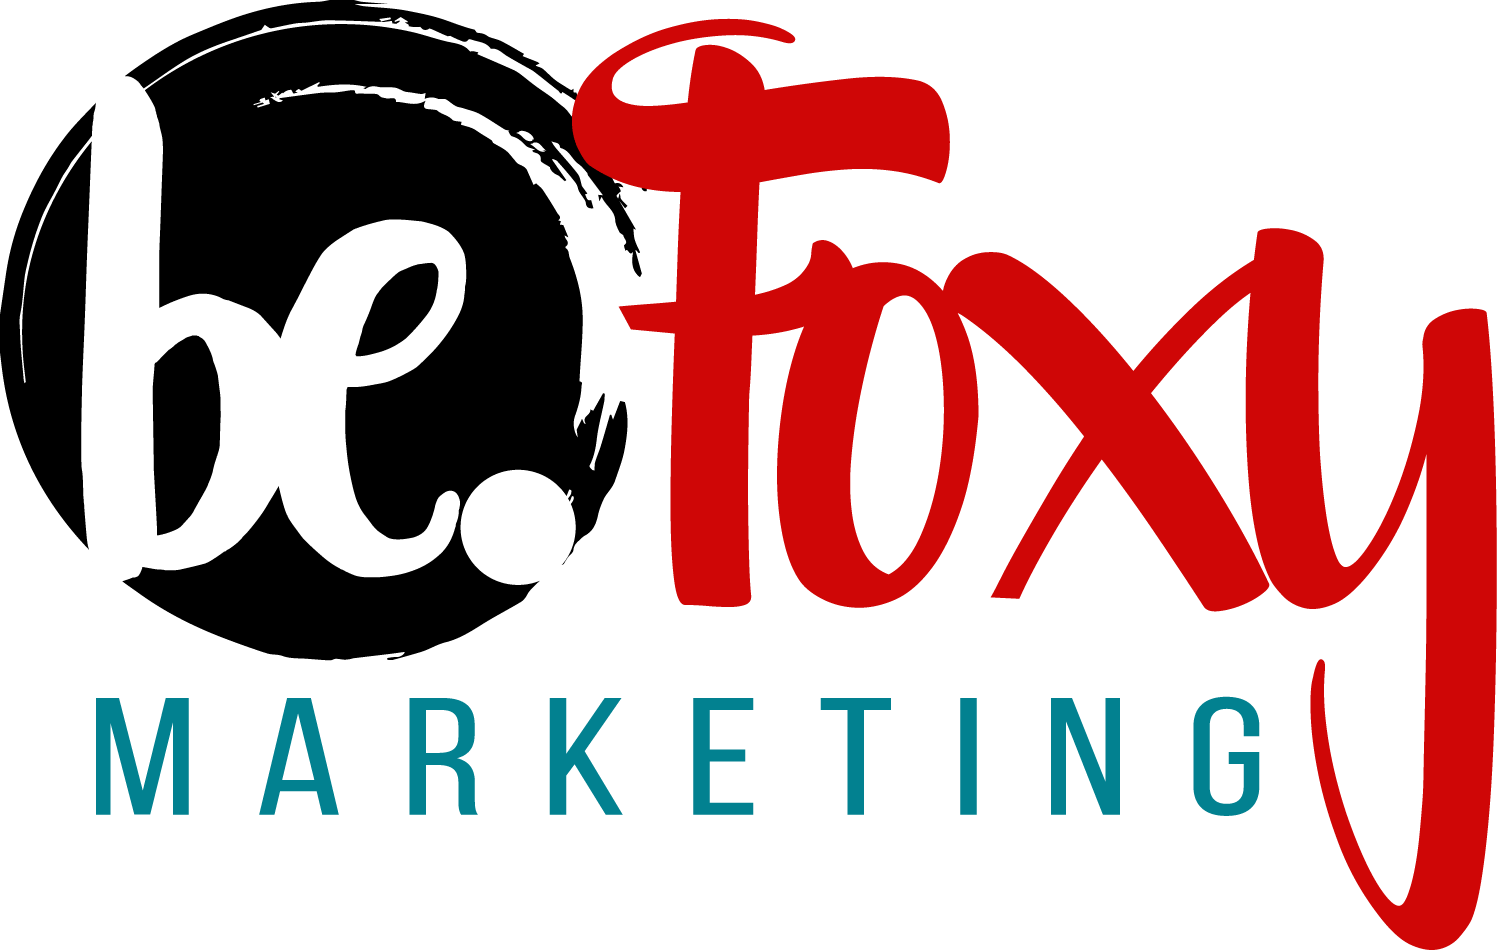 Be Foxy Marketing